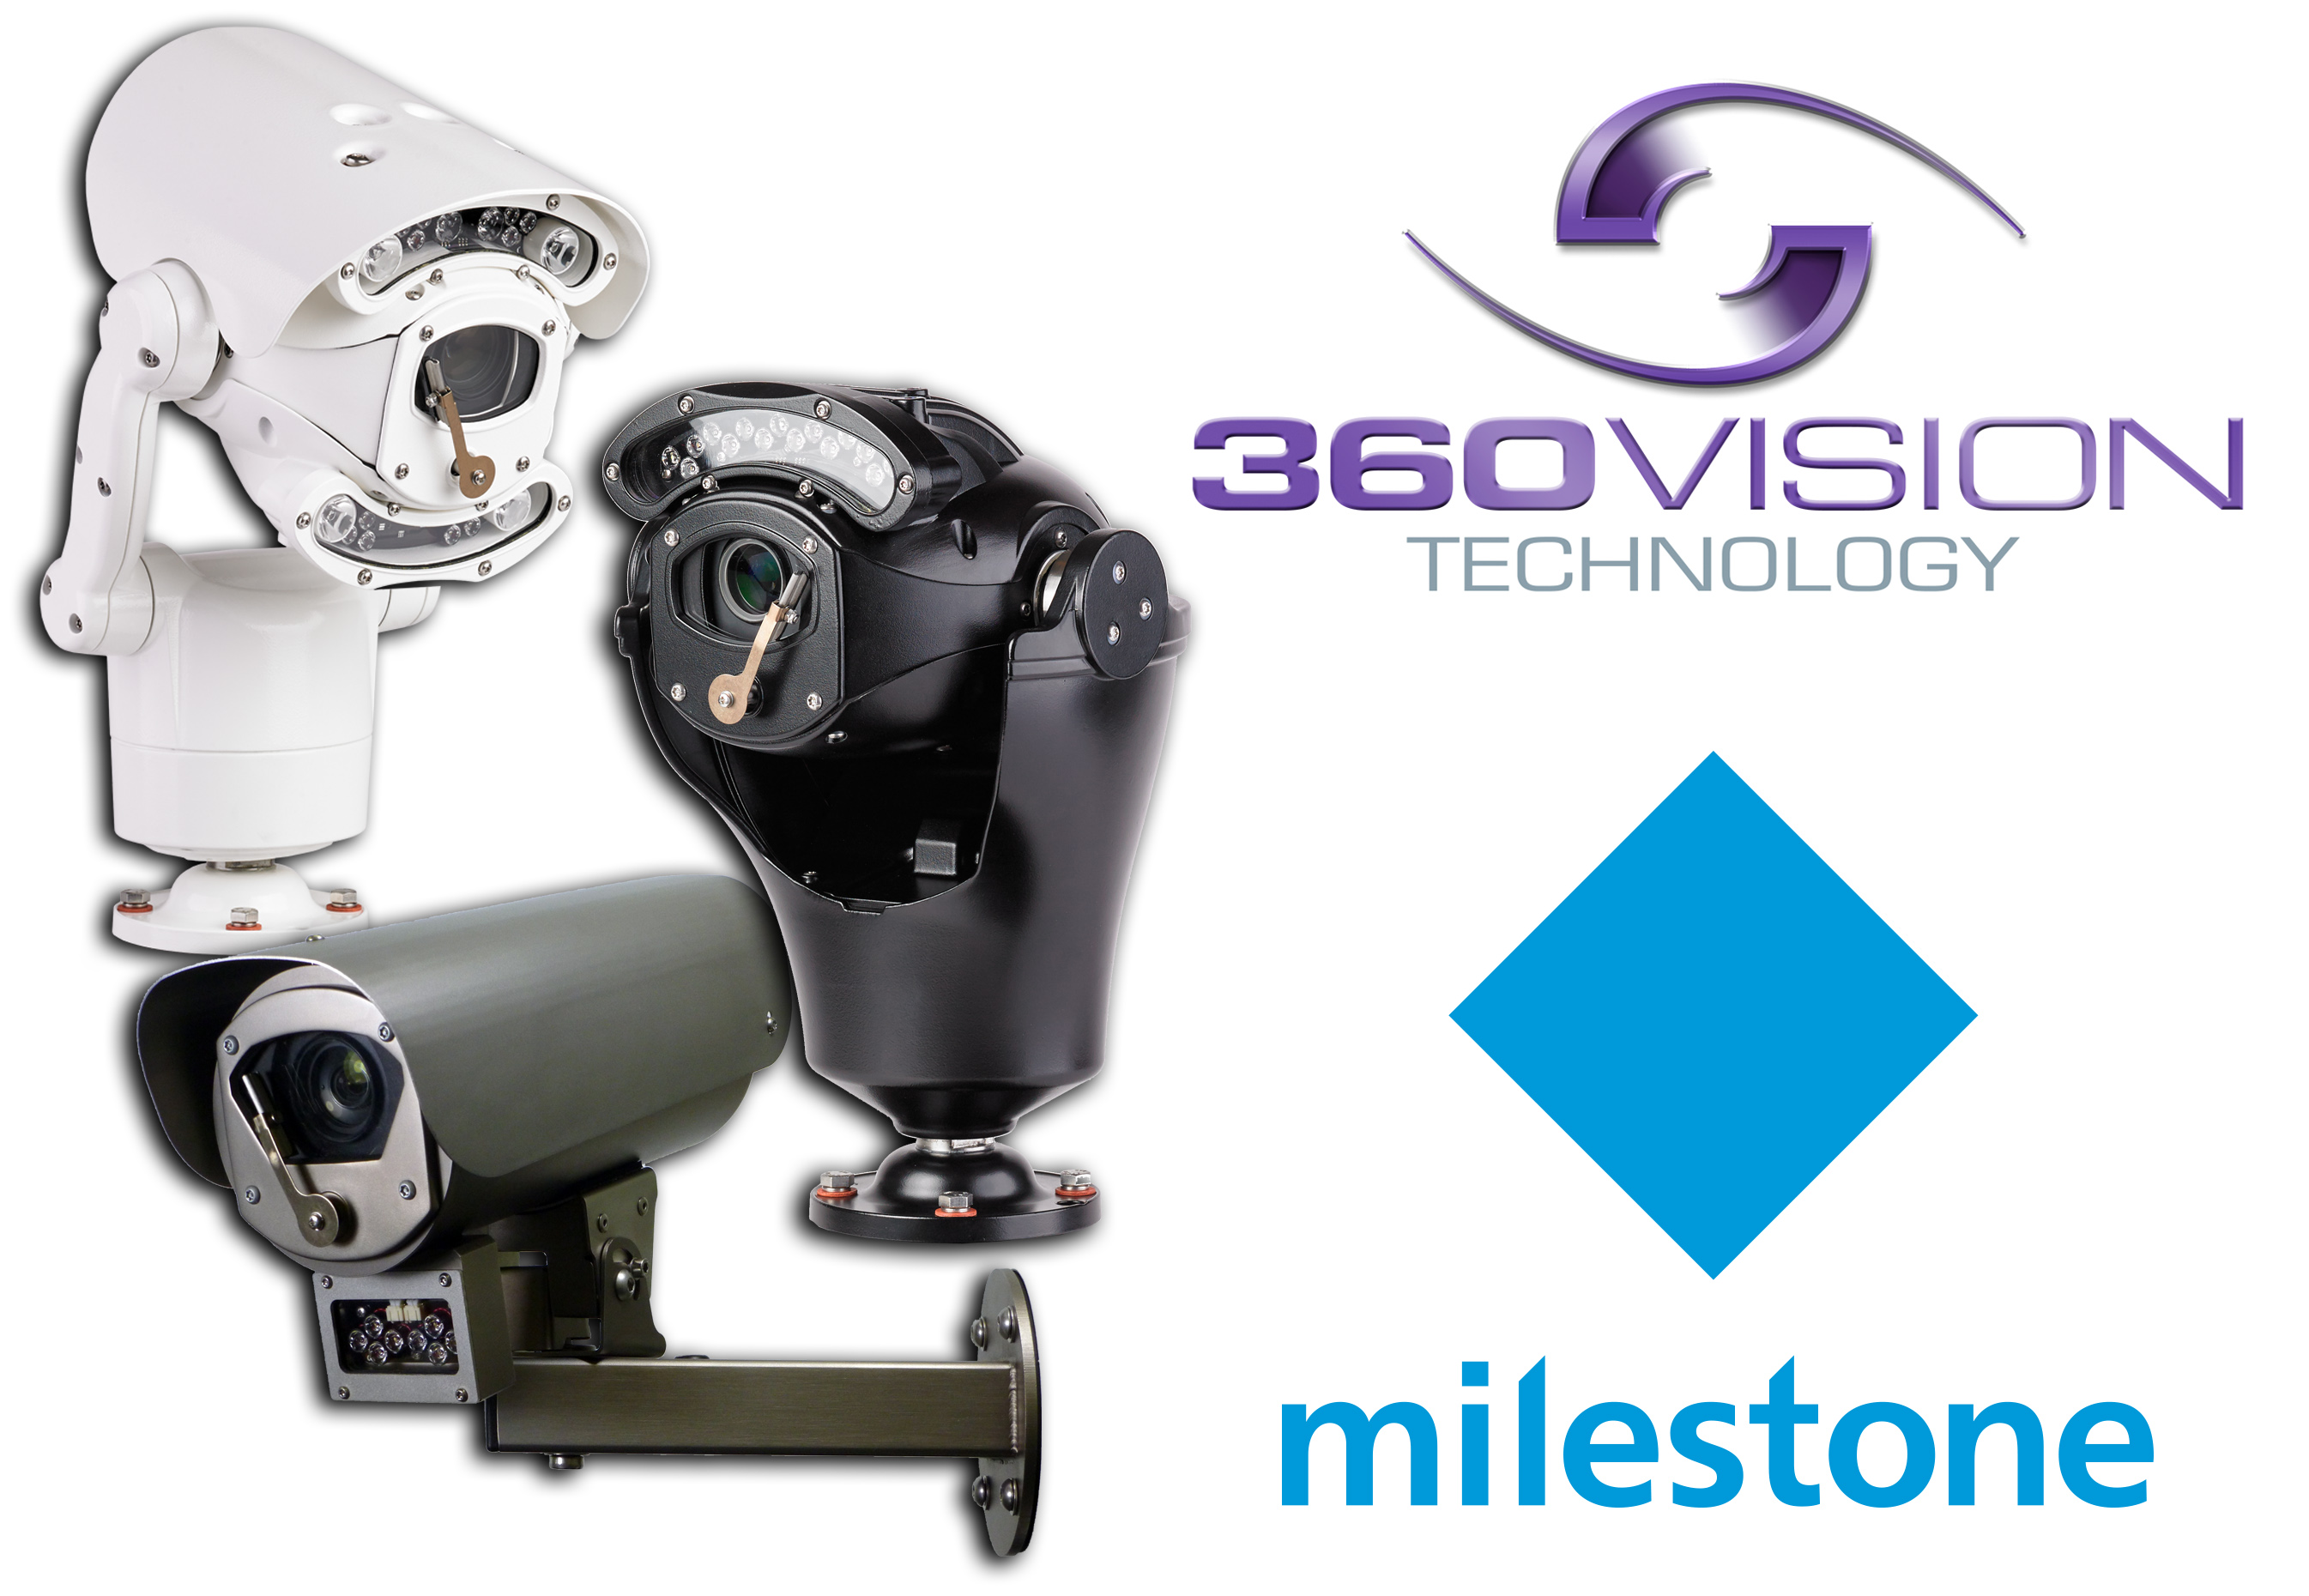 News - 360 Vision Technology